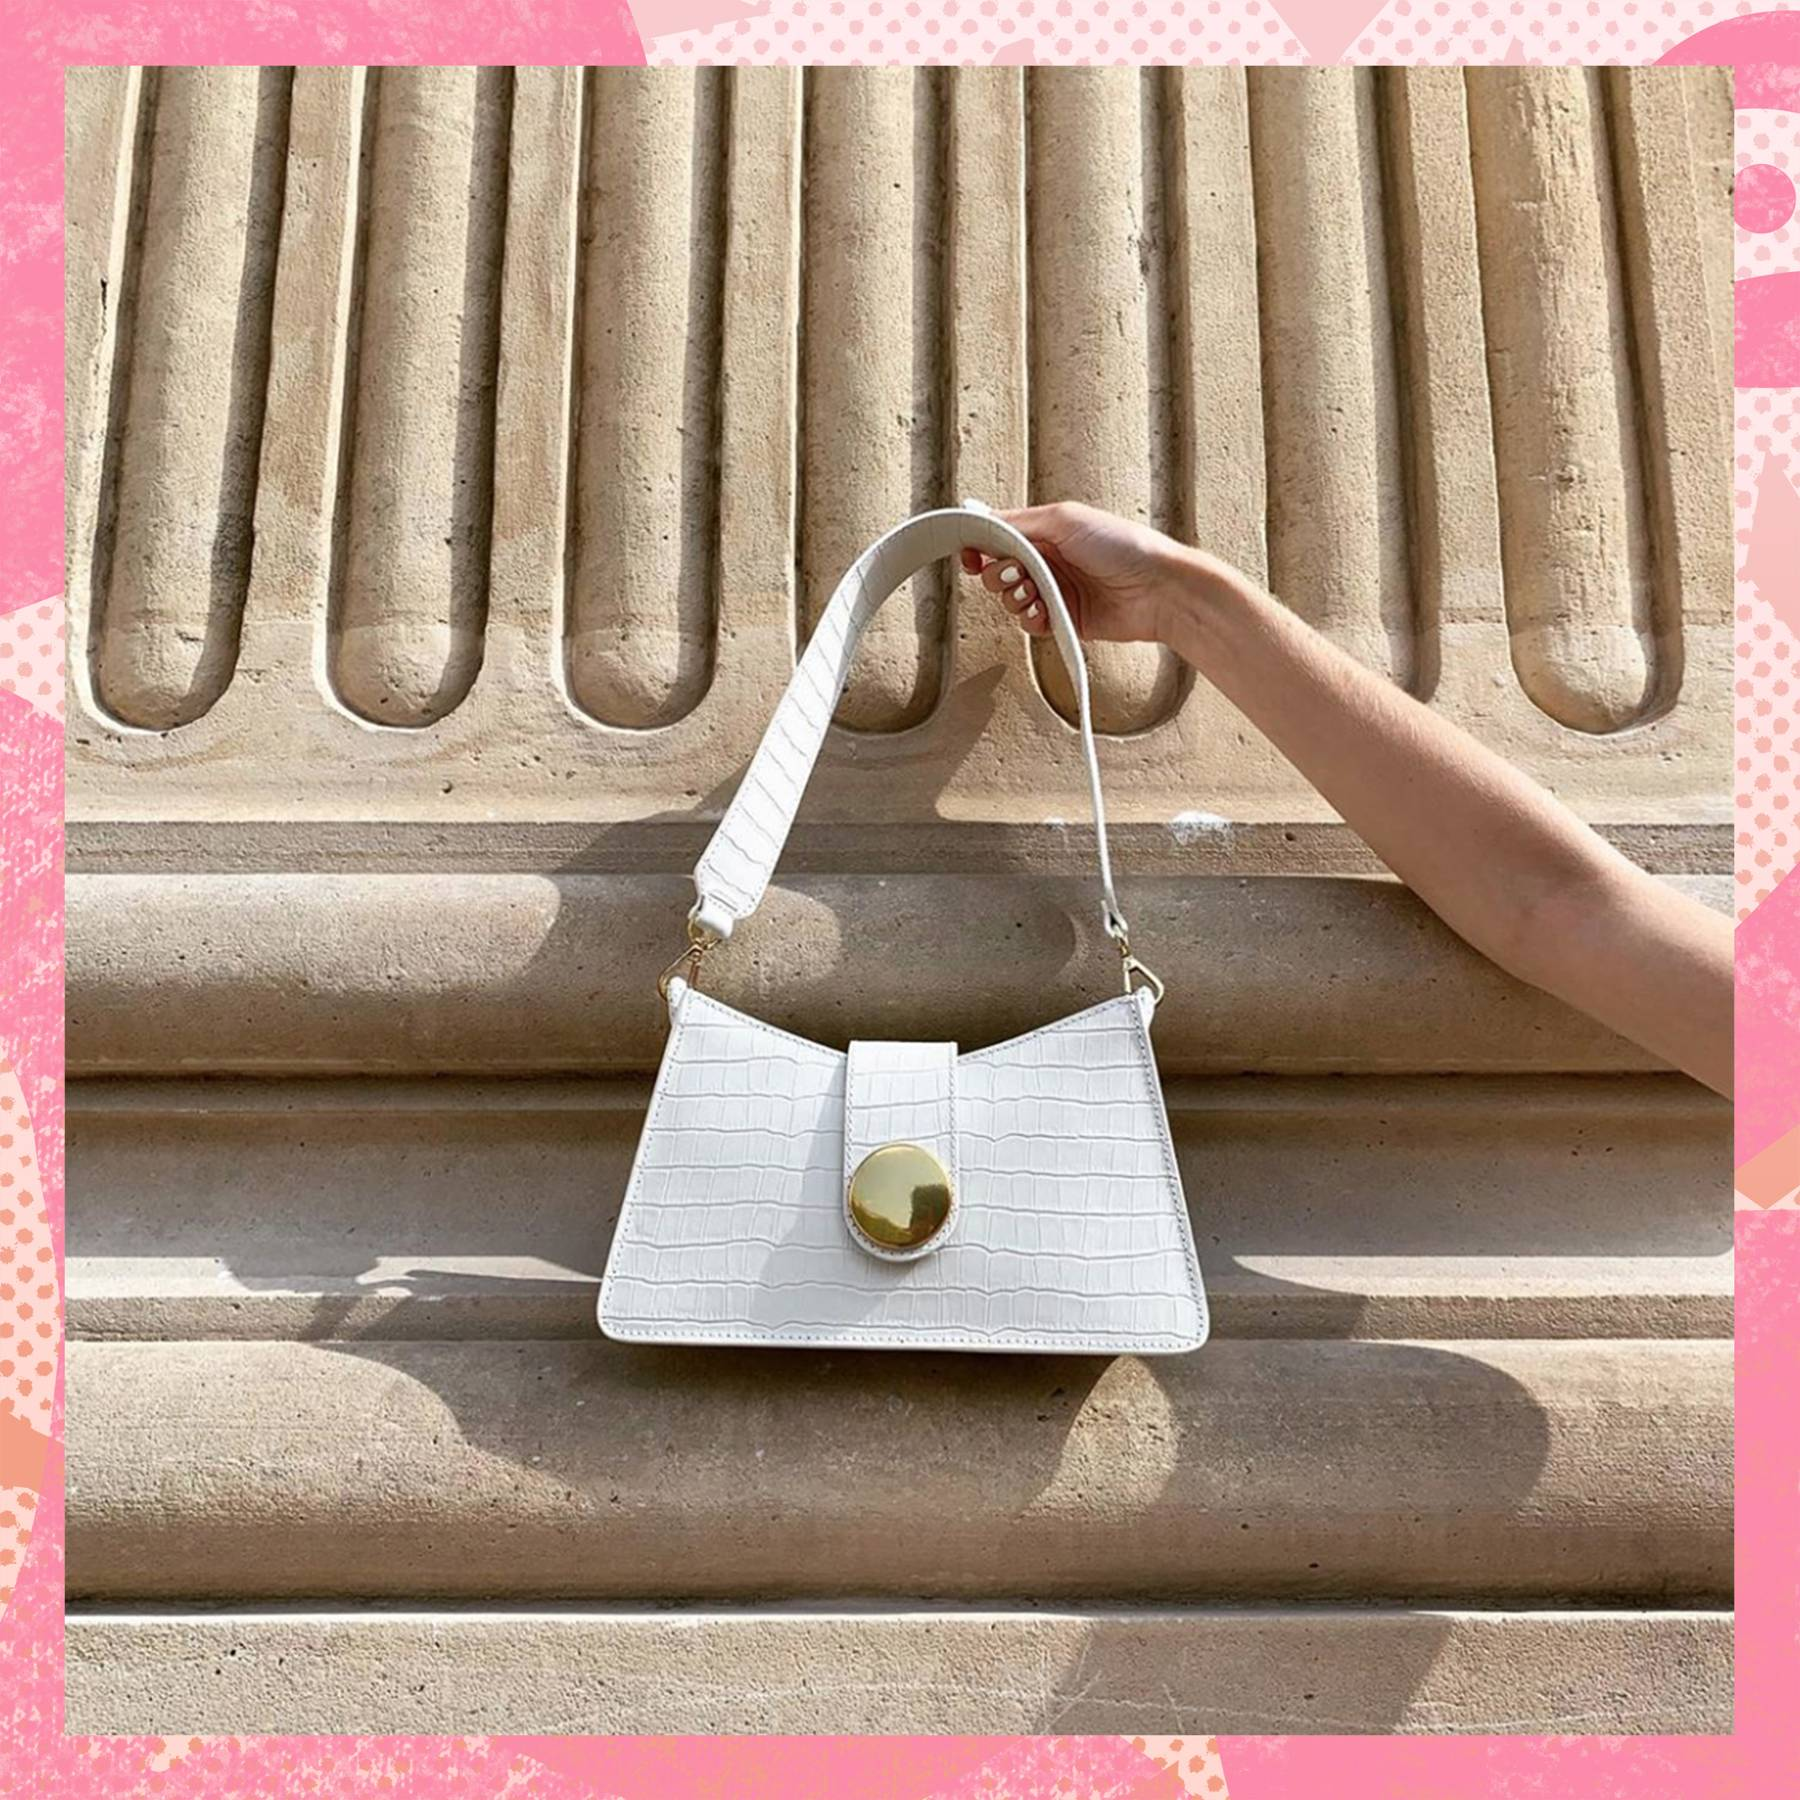 Meet the latest Parisian handbag brand loved by fashion girls all over the world